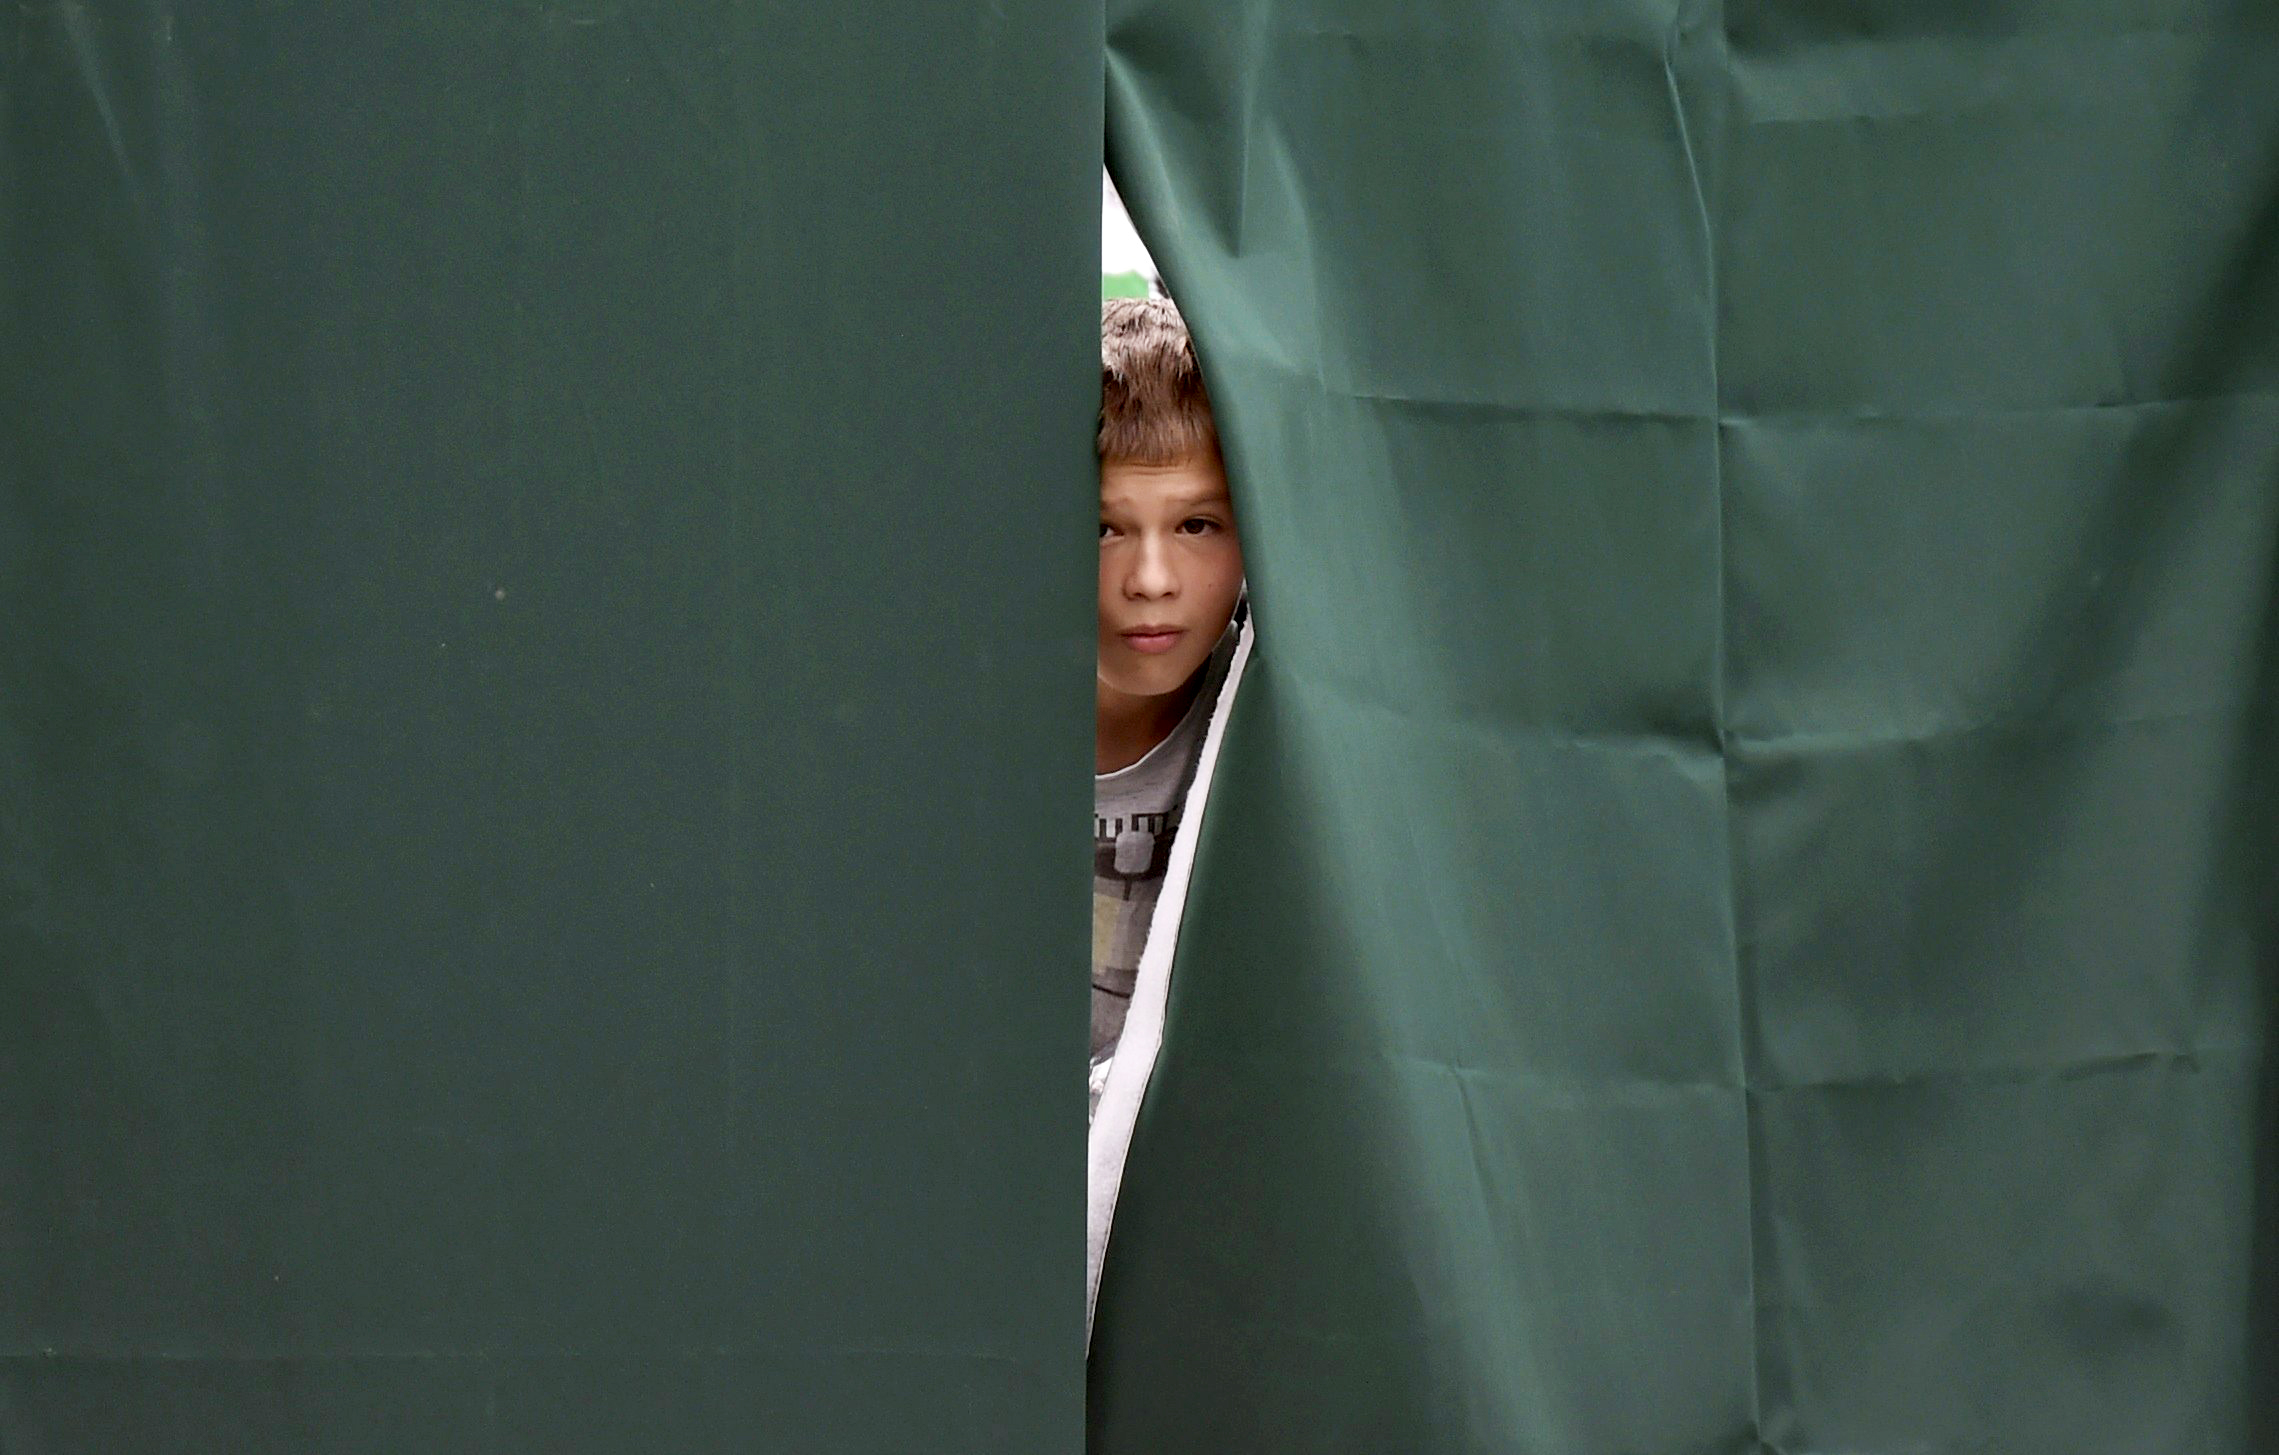 A boy looks through a gap in canvas screening on Court 12 at the Wimbledon Tennis Championships, in London on  June 23, 2014.